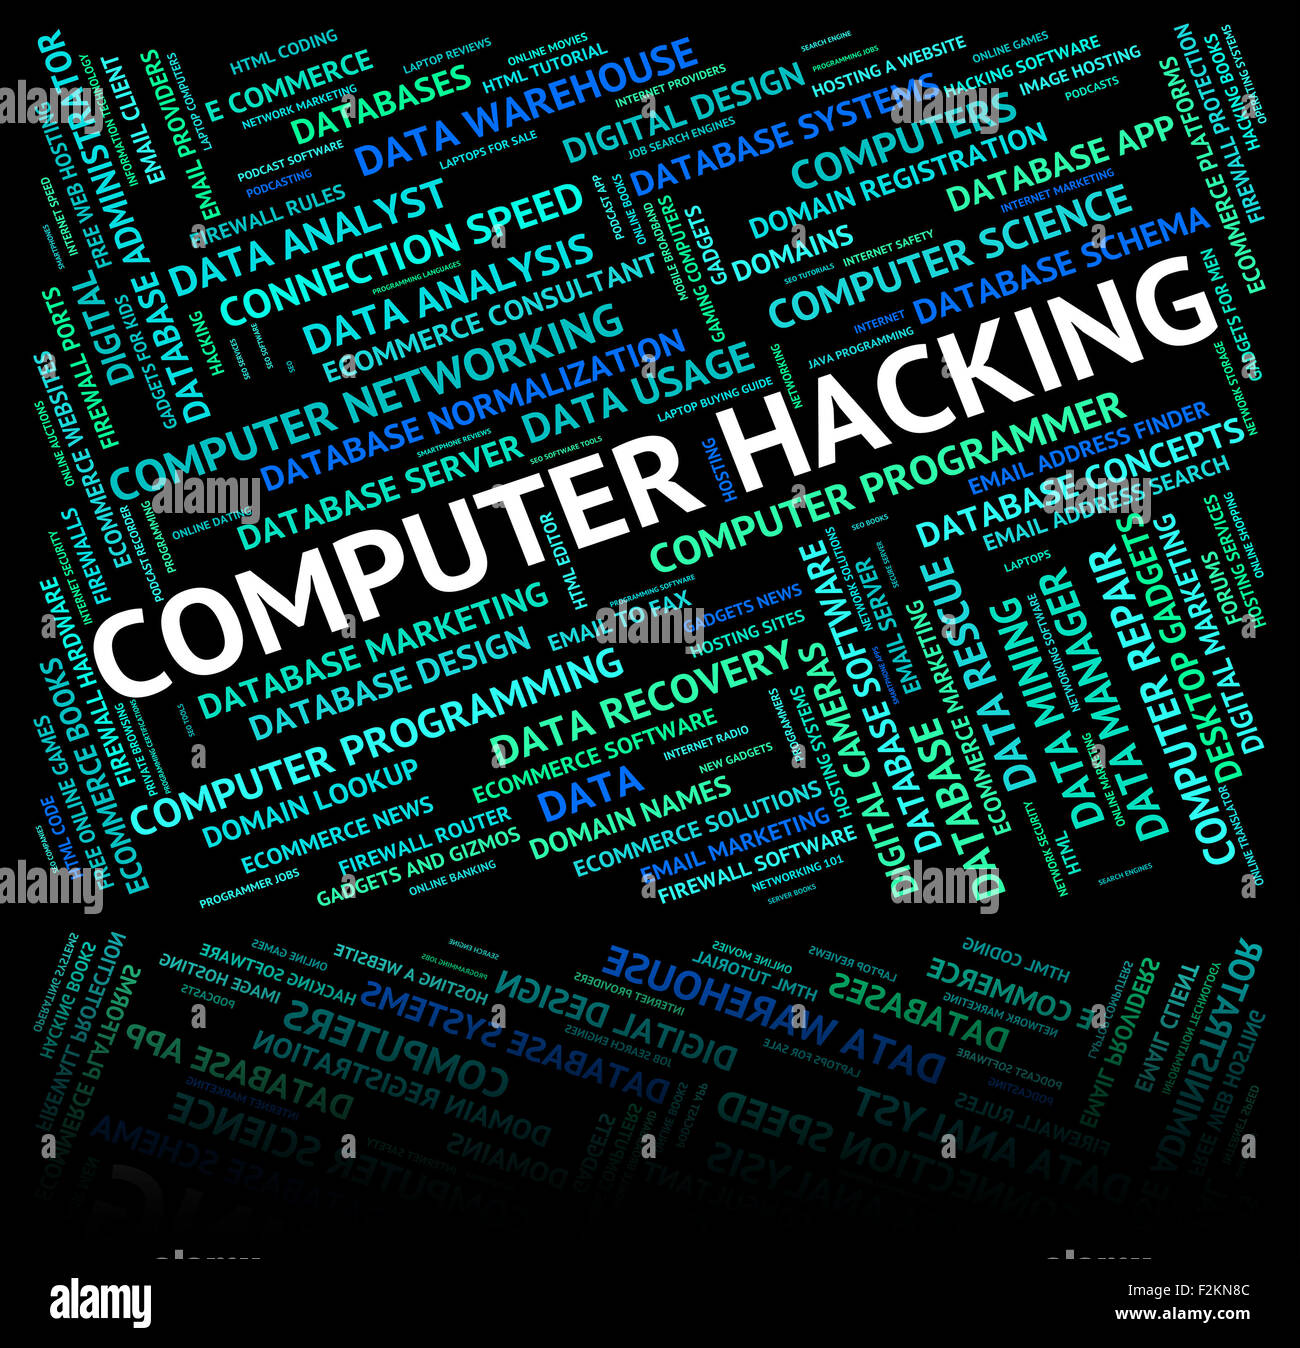 computer hacking Find computer hacking latest news, videos & pictures on computer hacking and see latest updates, news, information from ndtvcom explore more on computer hacking.